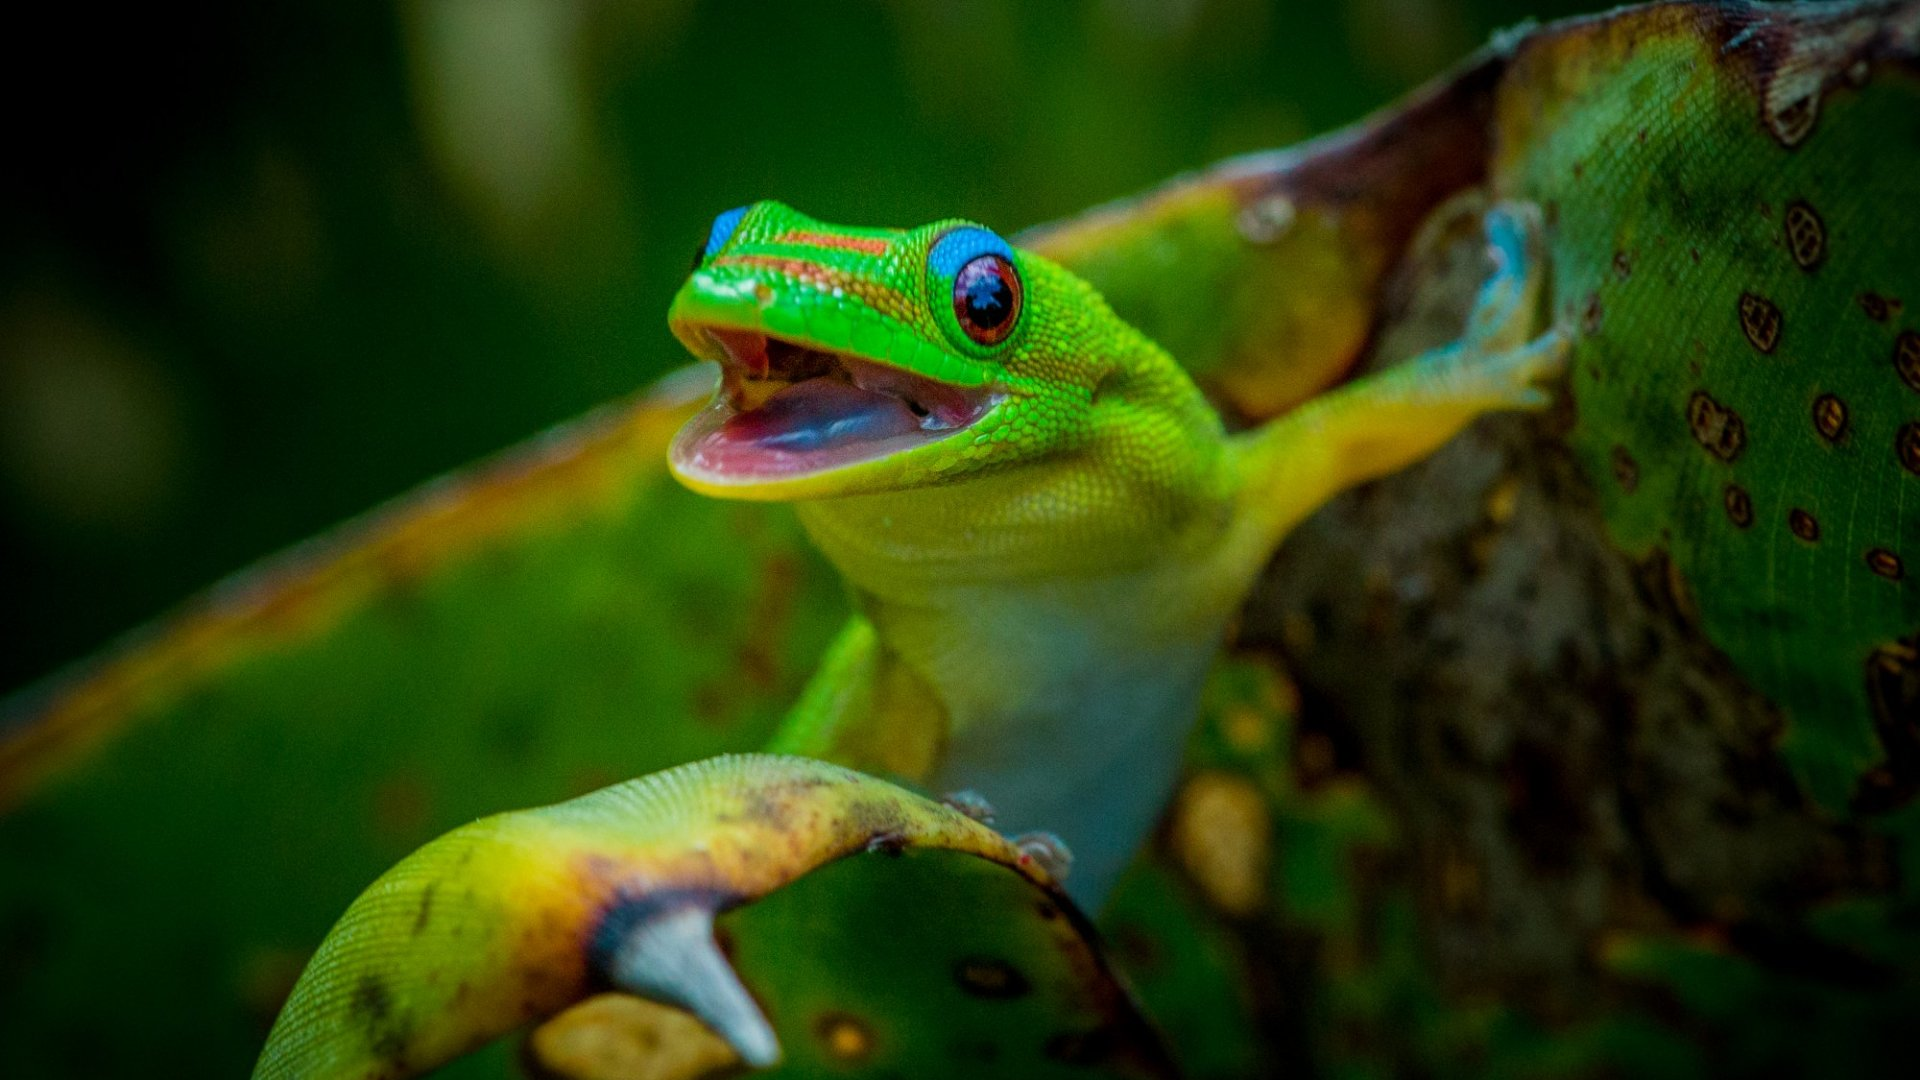 8 Characters Like the GEICO Gecko That Elevate Brand Recognition